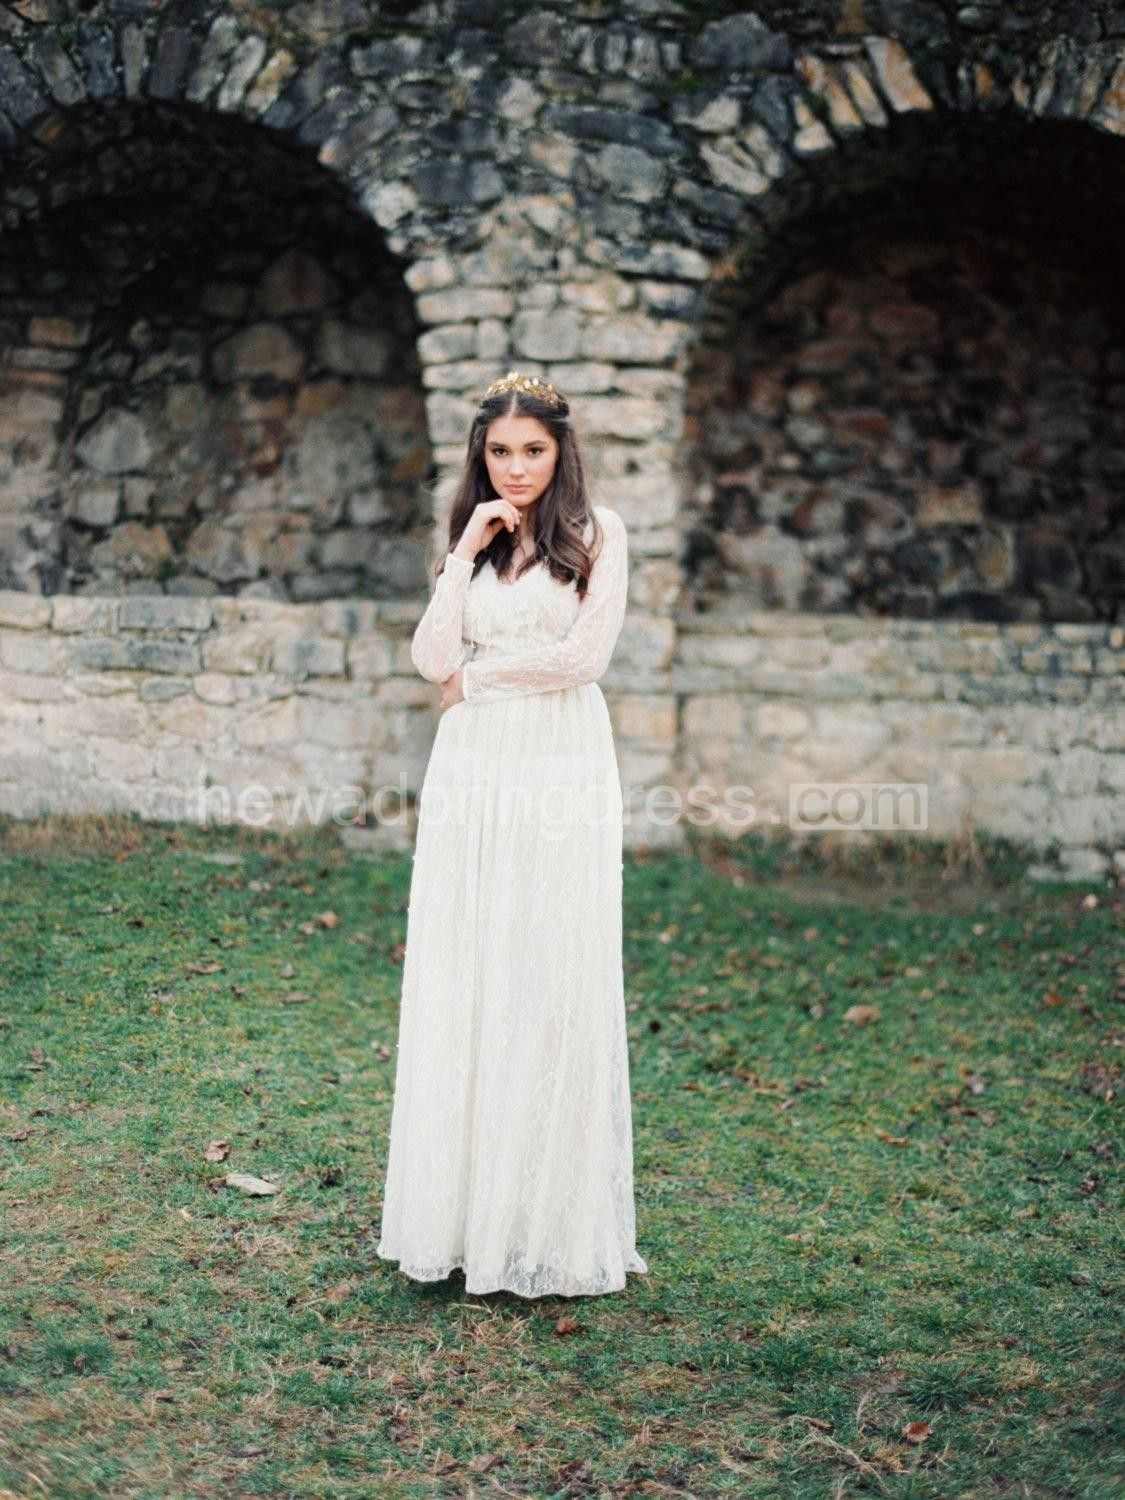 Boho noncorset lace wedding dress with long sleeves lace wedding